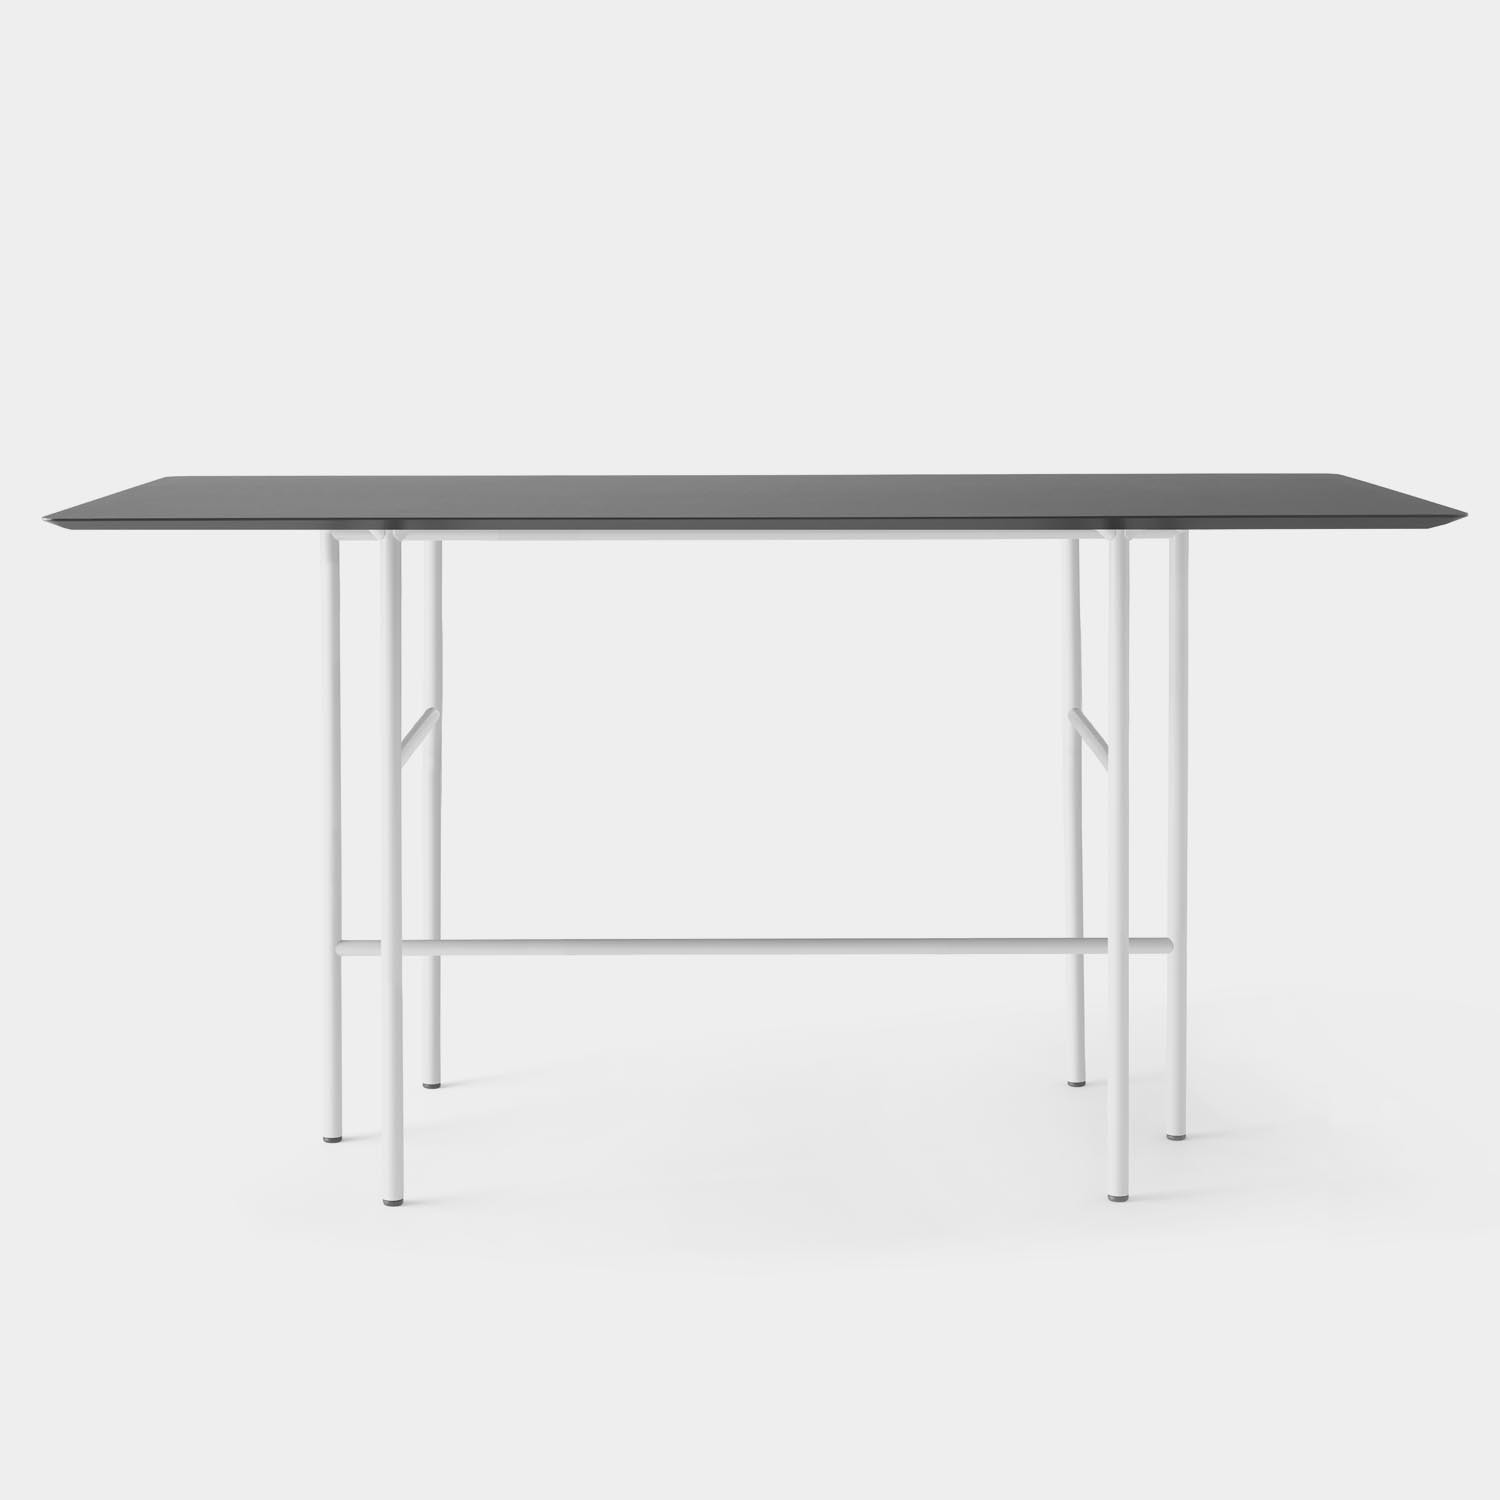 Snaregade Bar Table, Linoleum Top, Light Gray Base